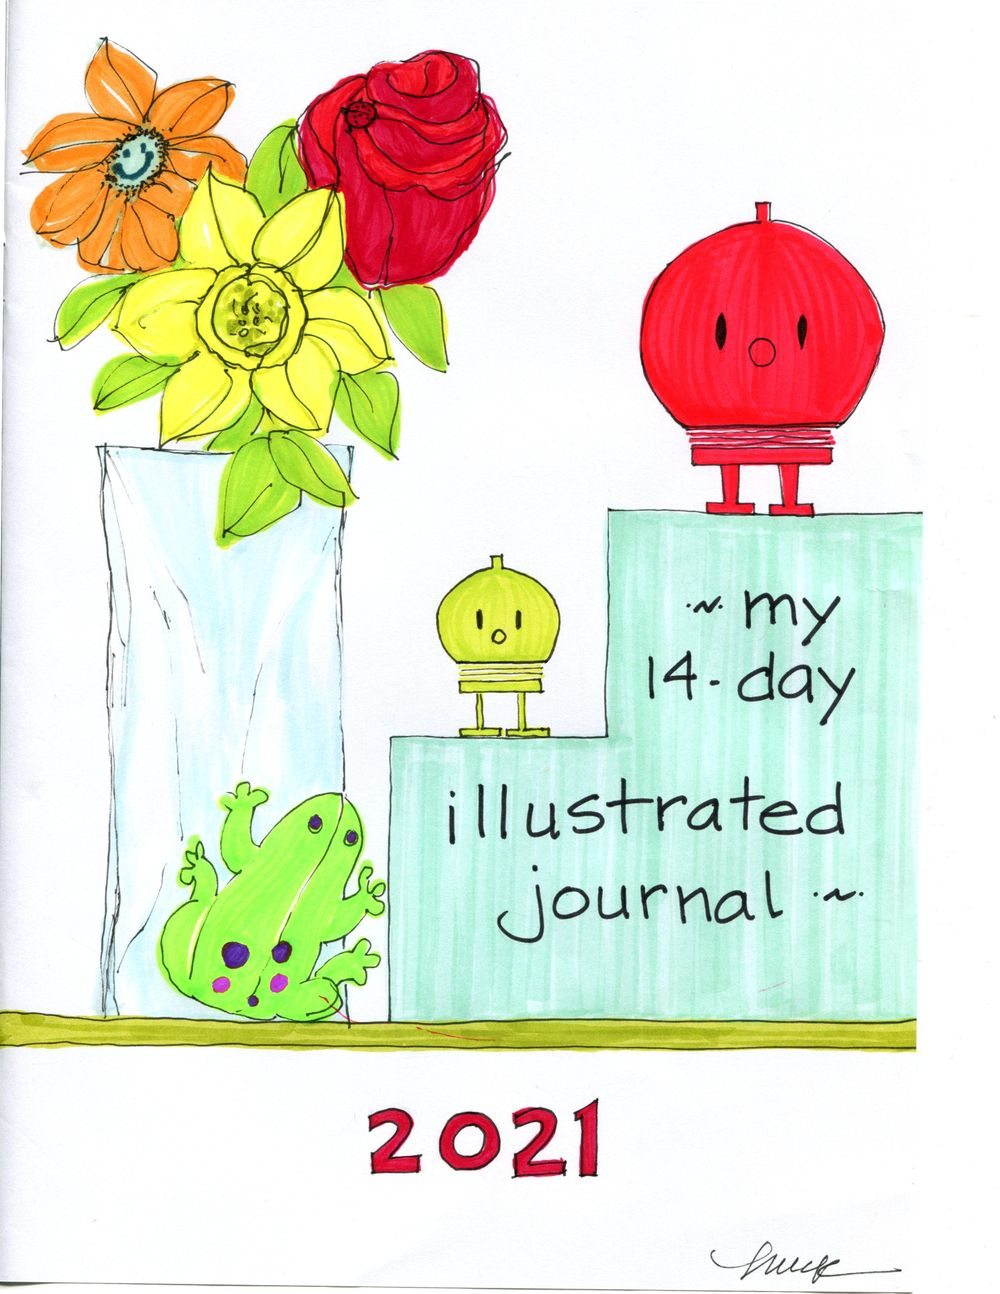 my 14-day illustrated journal - image 1 - student project